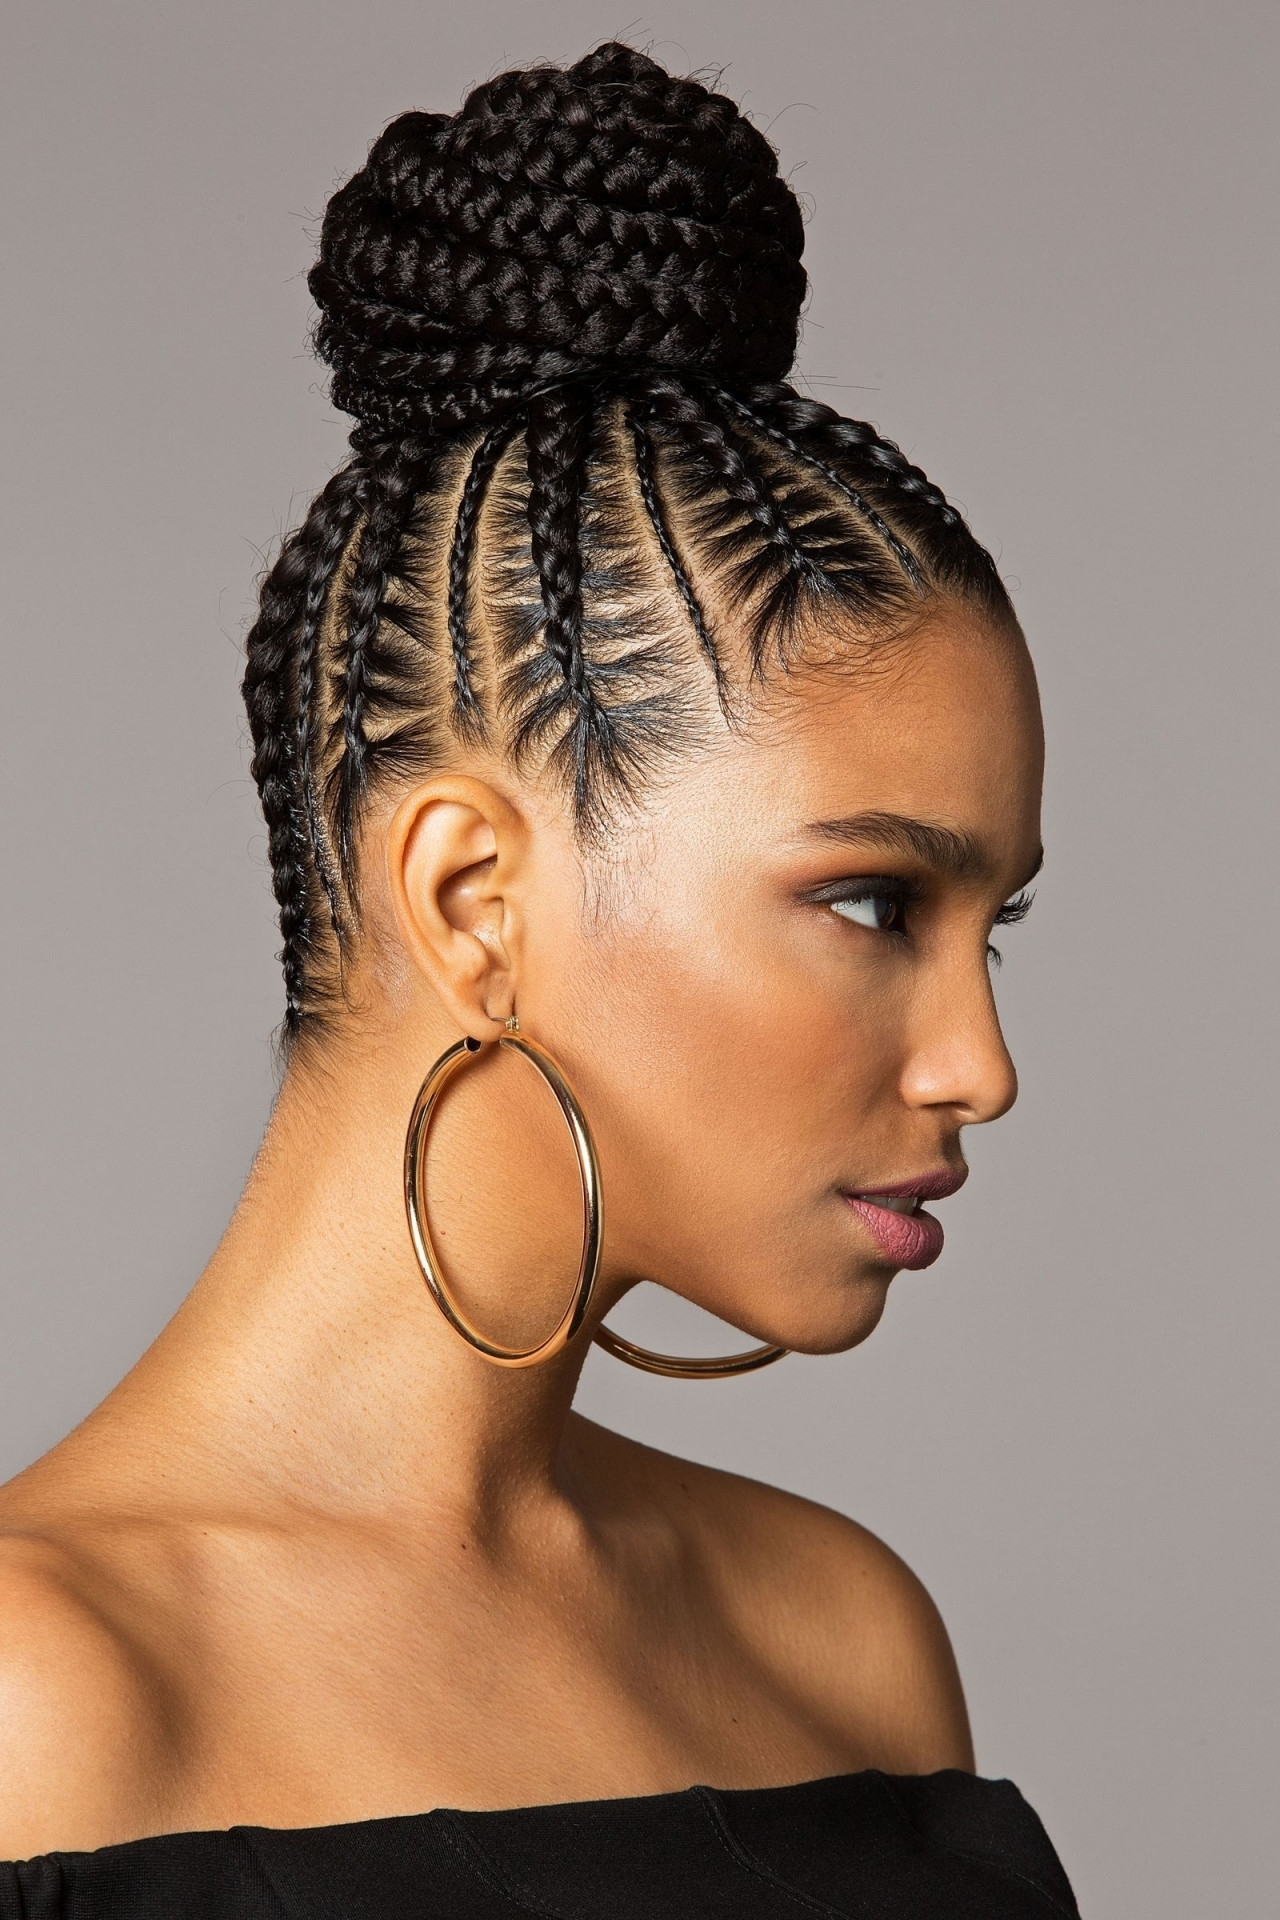 Cornrow Hairstyles For Short Natural Hair Unique You Re Going To With Regard To Favorite Cornrow Hairstyles For Short Hair (View 5 of 15)